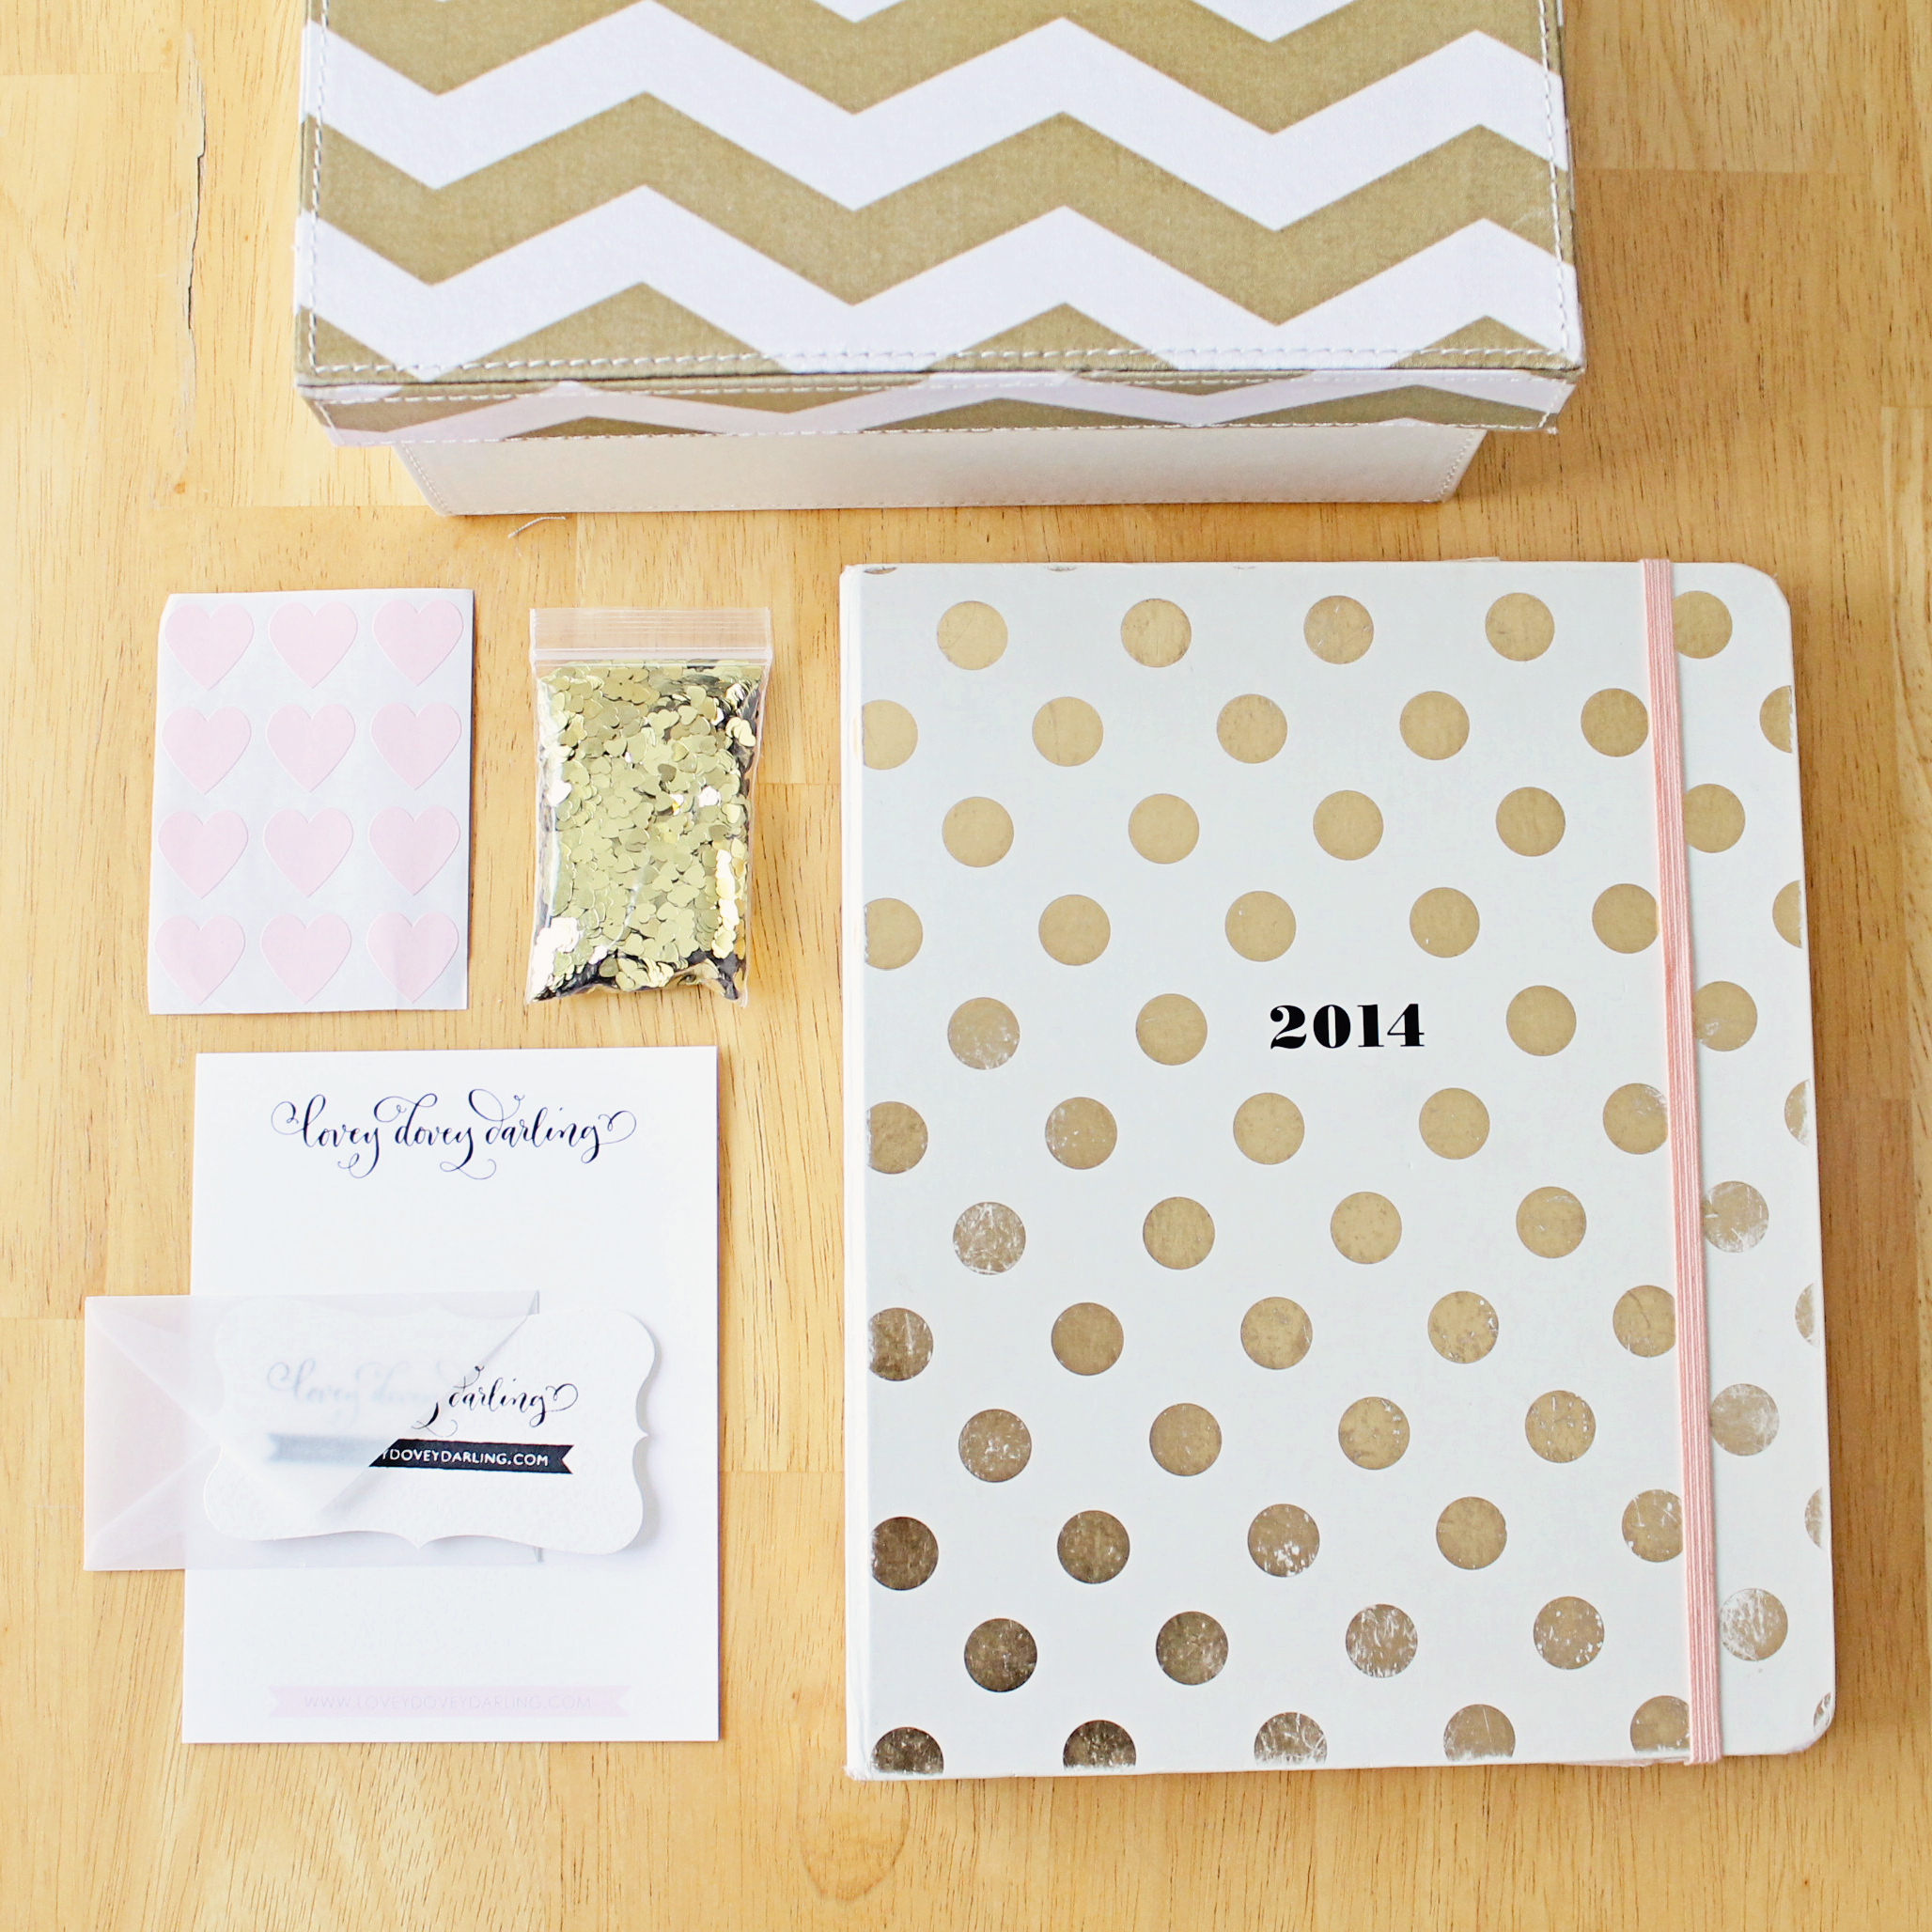 Lovey Dovey Darling Pretty Packaging - Kate Spade Agenda, Target Chevron Box, Calligraphy Stationary